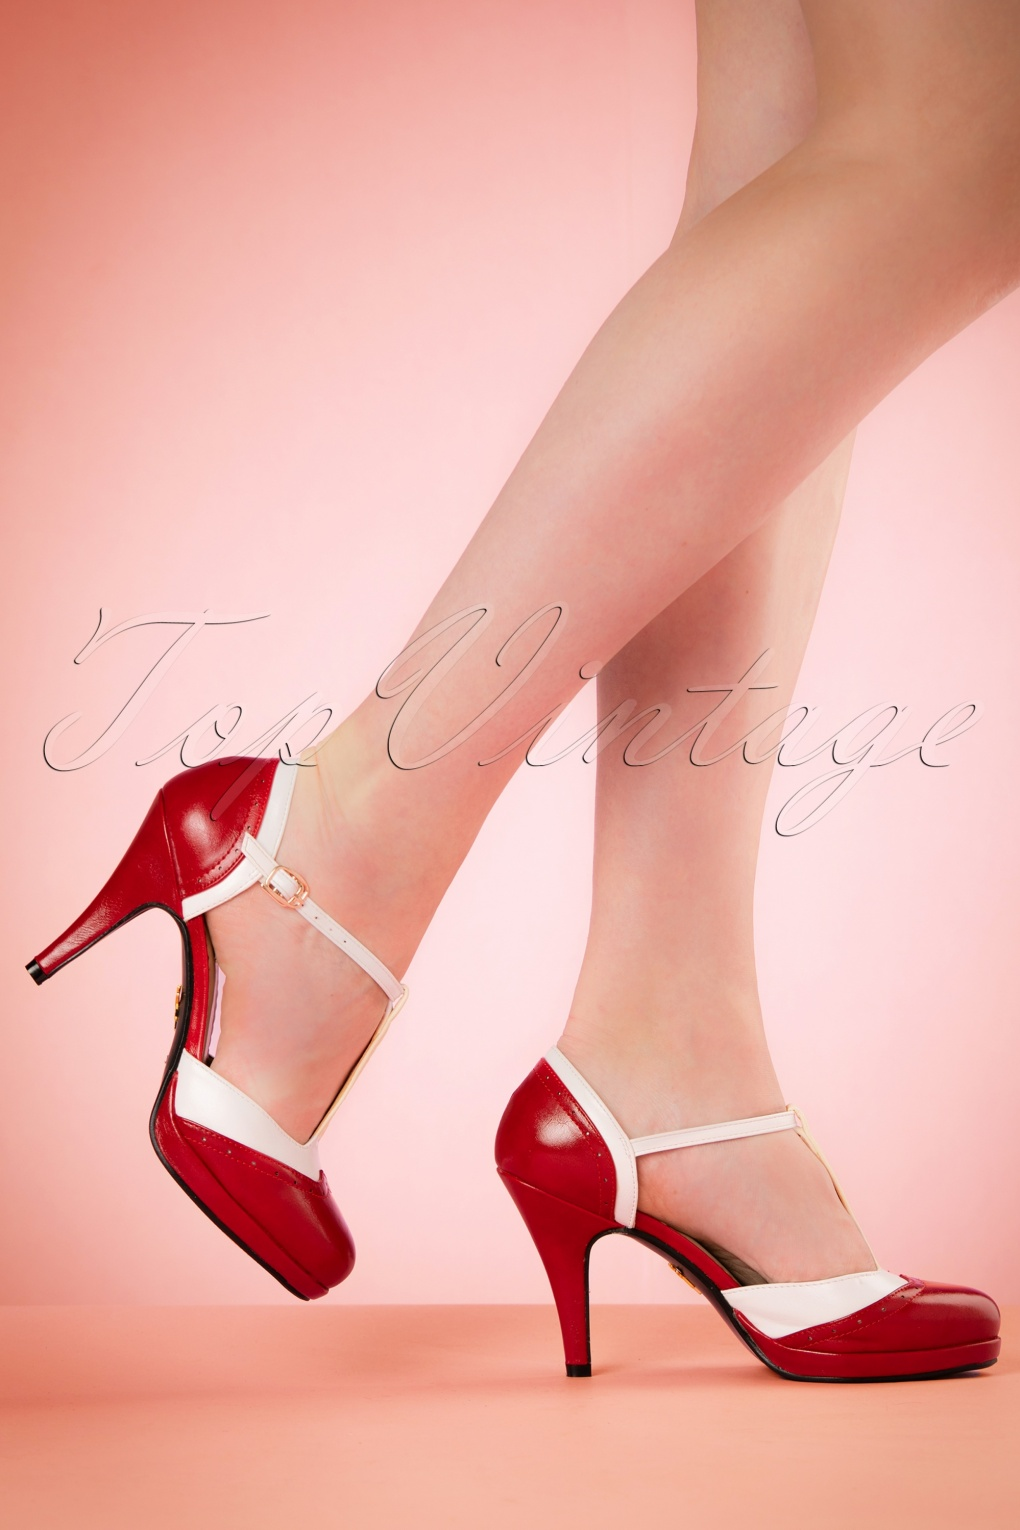 Vintage Style Shoes, Vintage Inspired Shoes 50s Anne T-Strap Pumps in Red and White £34.47 AT vintagedancer.com